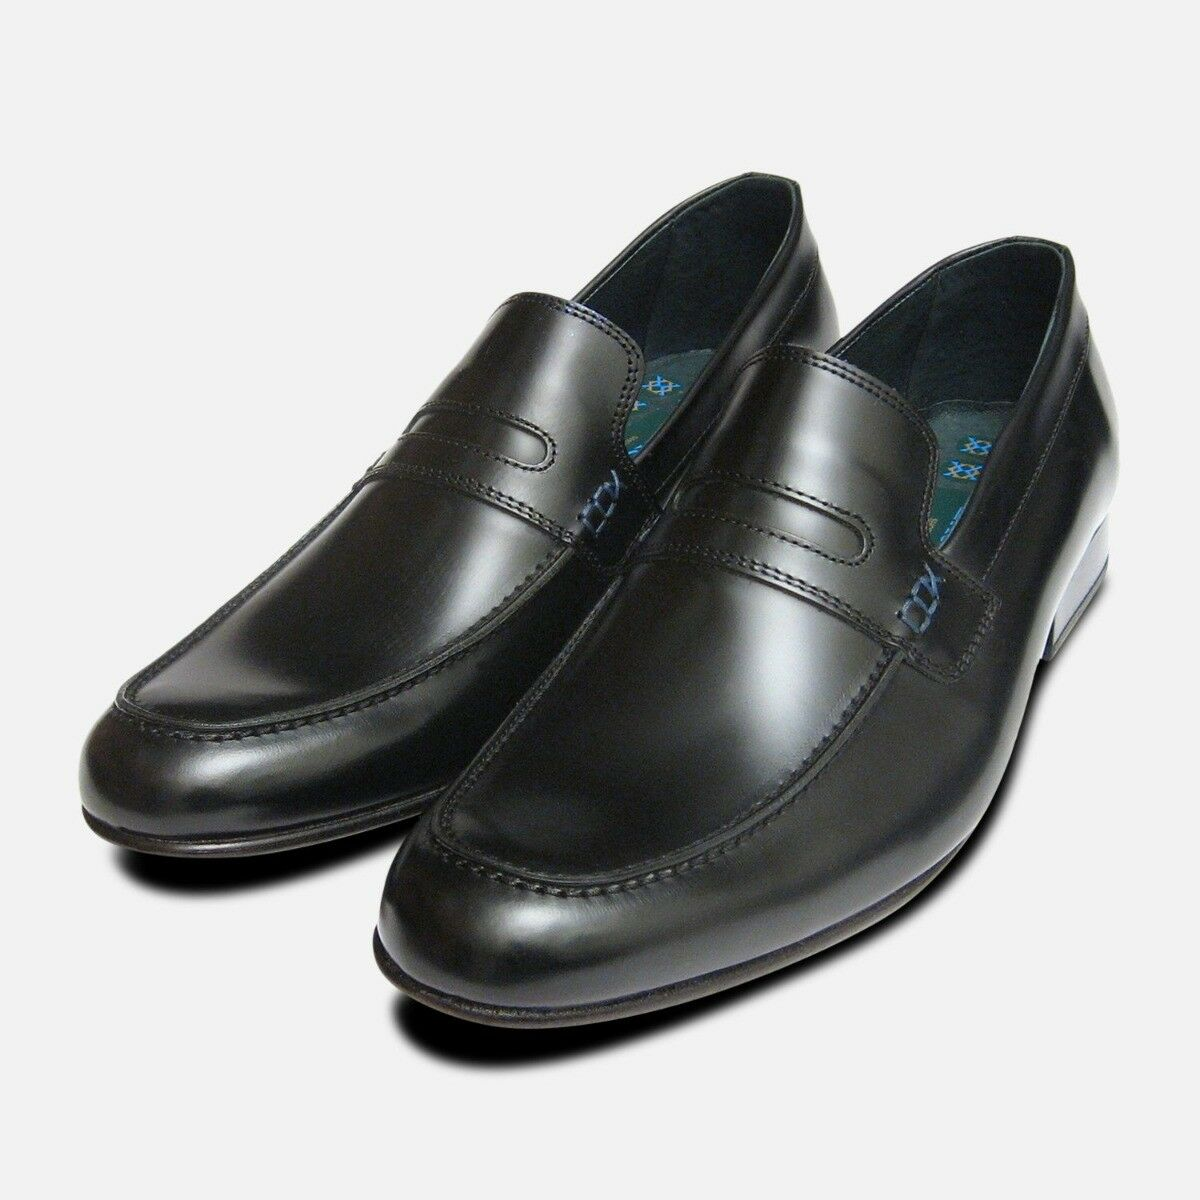 Vanquish Designer Loafers in Black Polished by Exceed Shoes